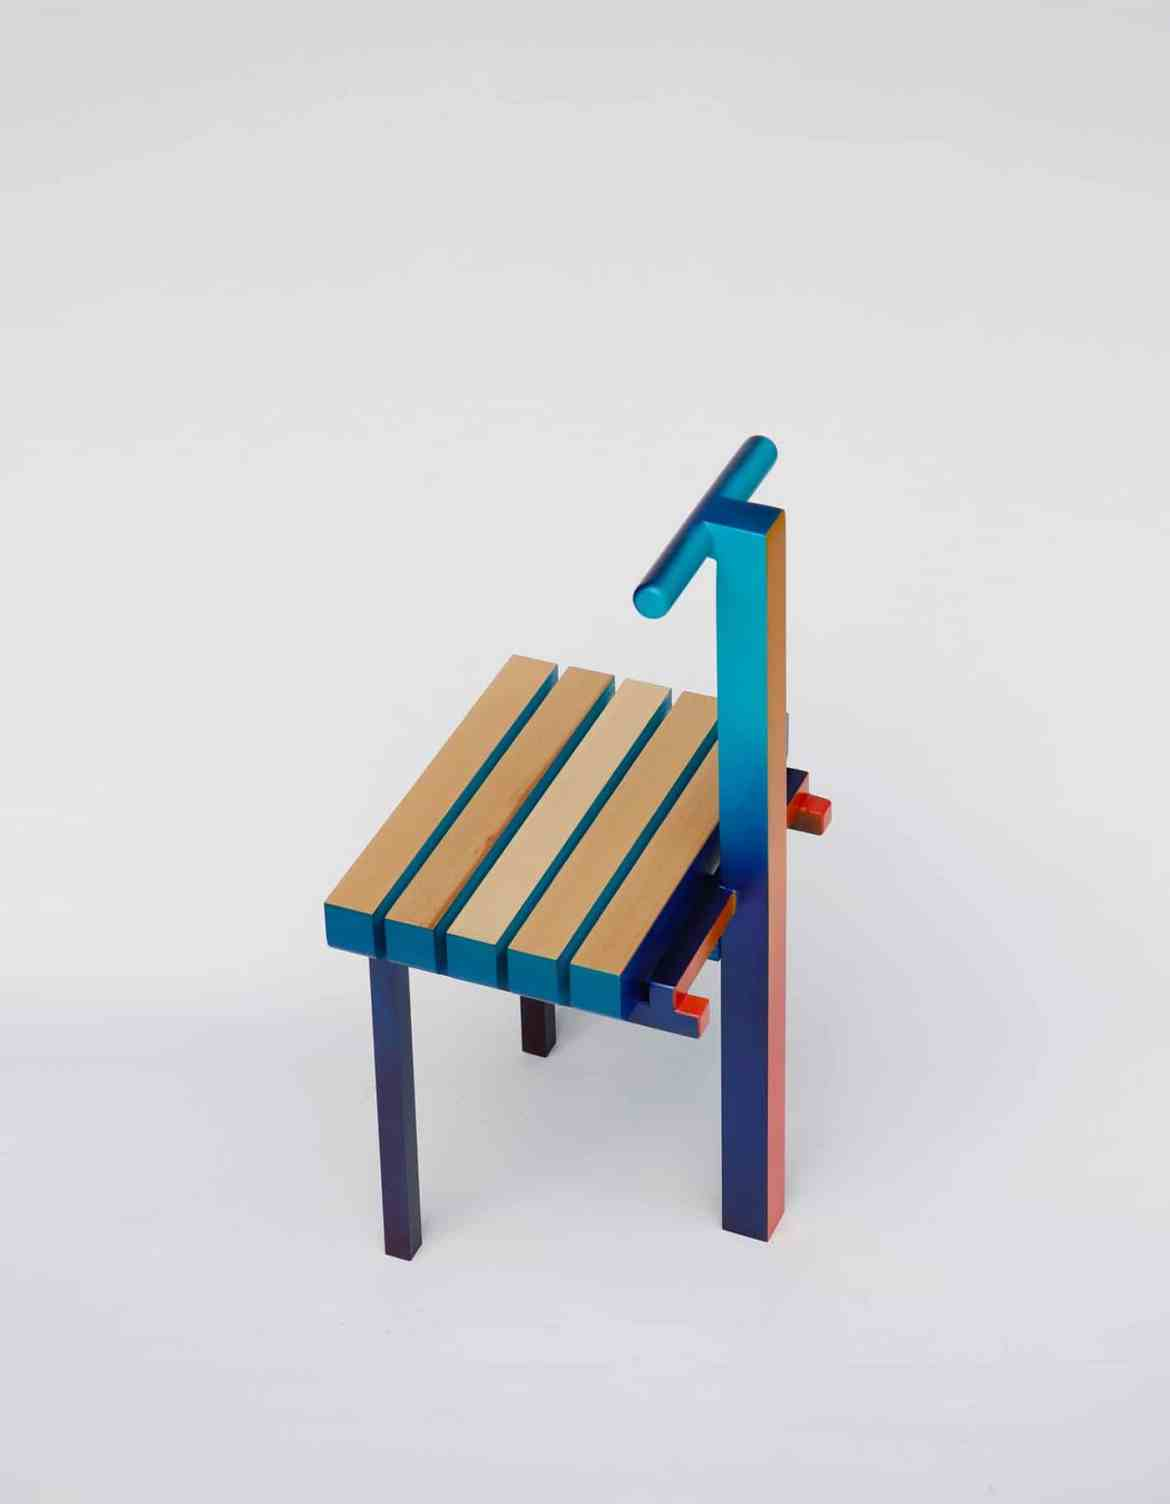 Collectible 2020, Malcolm Majer for Huskdesignblog